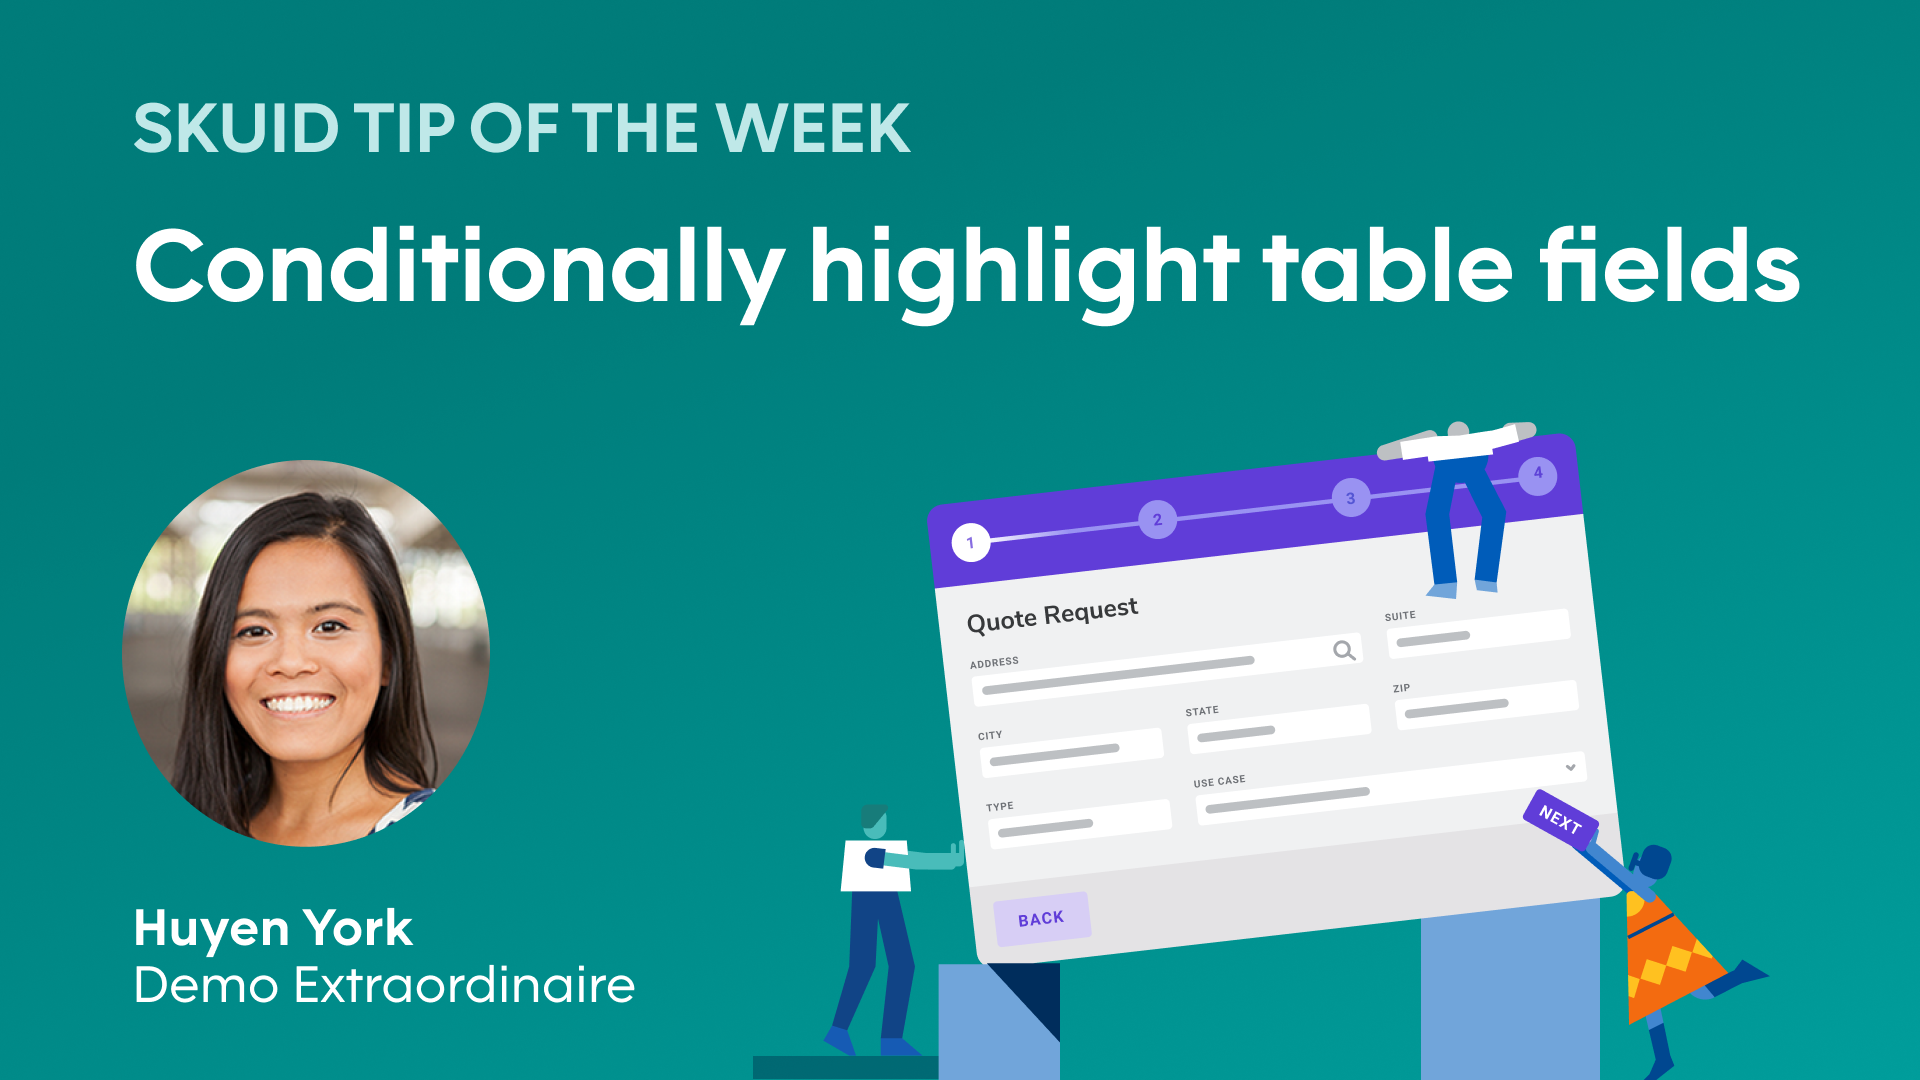 Conditionally highlight table fields | Skuid tip of the week